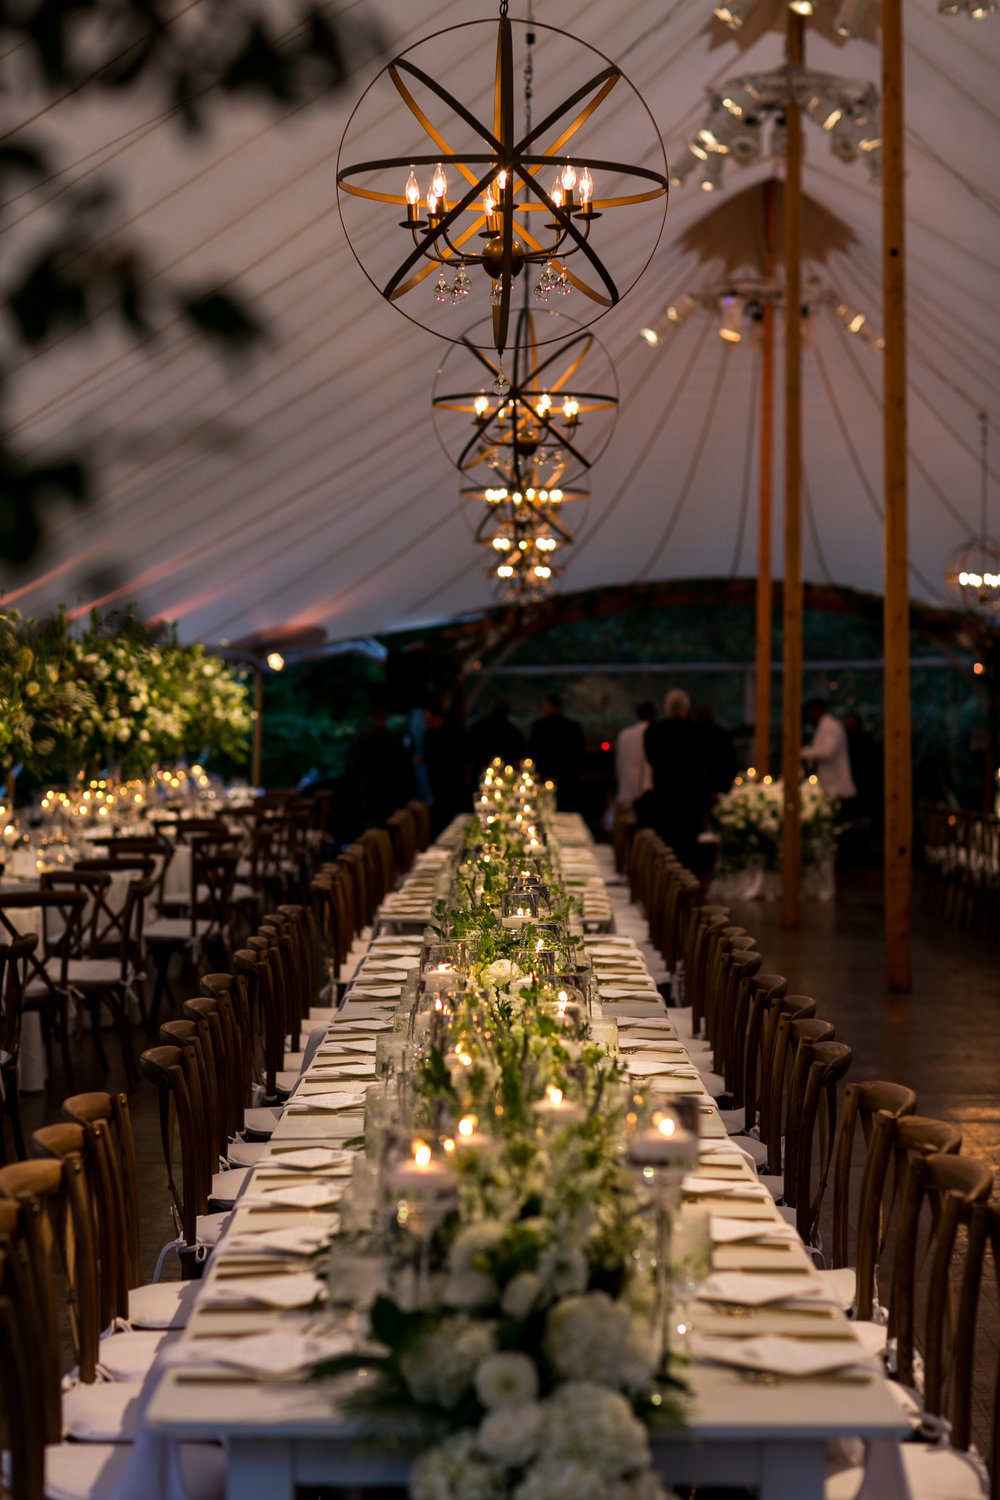 KATY-AND-TOM-HINGHAM-MASSACHUSETTS-WEDDING-DESTINATION-LUXURY-WEDDING-CATHOLIC-CHURCH-BACK-YARD-SPERRY-SAIL-CLOTH-TENT-COASTAL-CHIC-TIMELESS-ROMANTIC-FARM-TABLES-CHANDELIERS